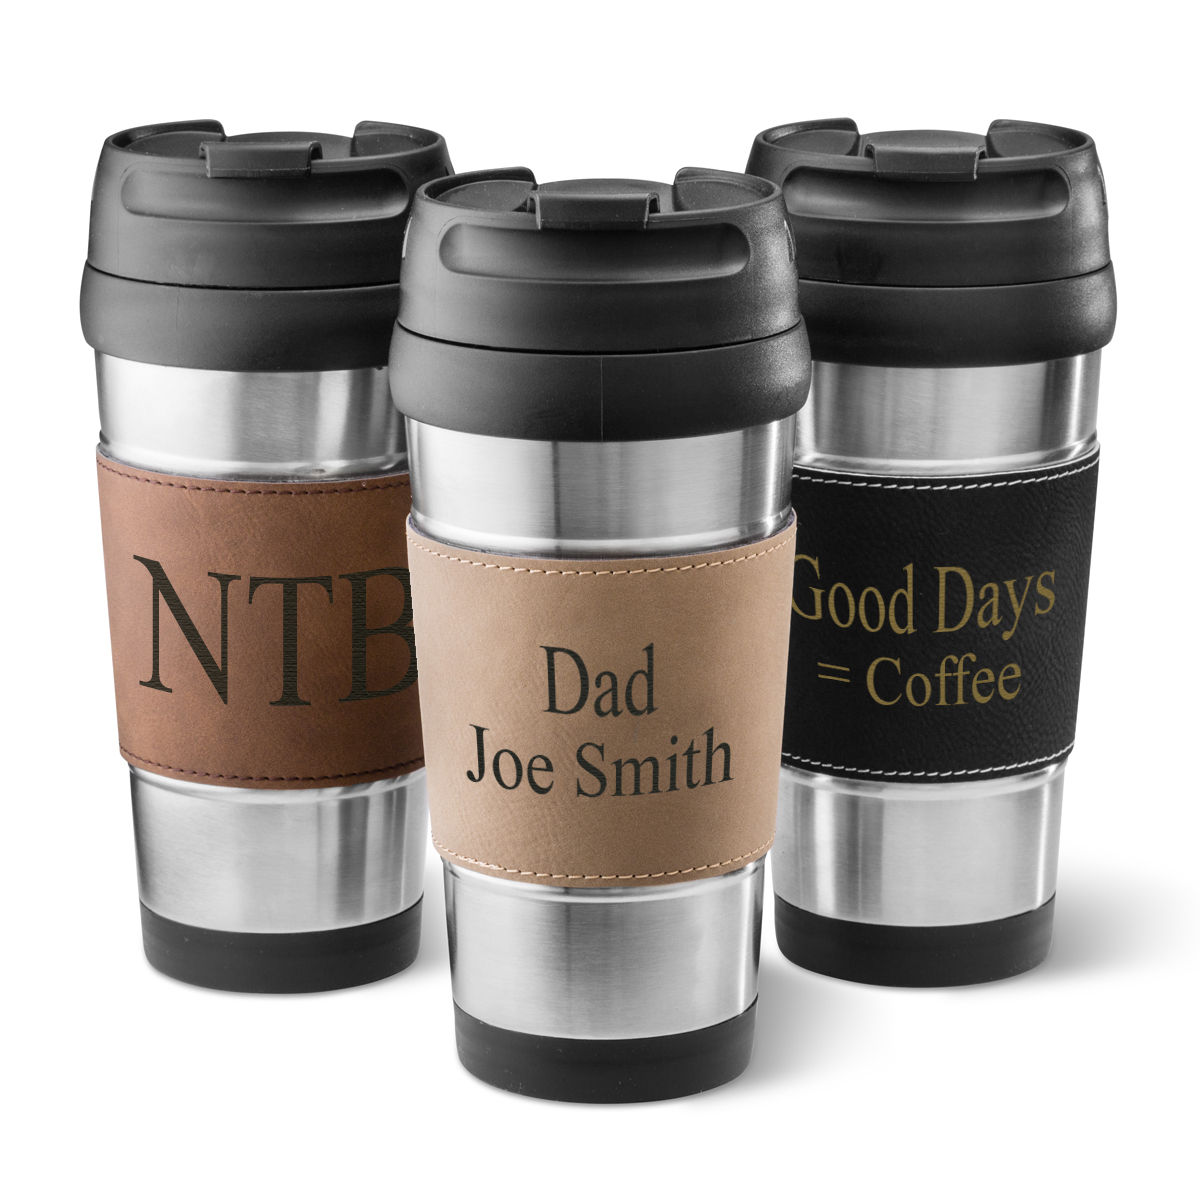 Sip hot beverages conveniently in this stainless steel mug that features a cylindrical profile with a screw lid at the top. It is wrapped with faux leather. The tall and tough profile of this steel mug makes it a wonderful container for hot beverages as #mug